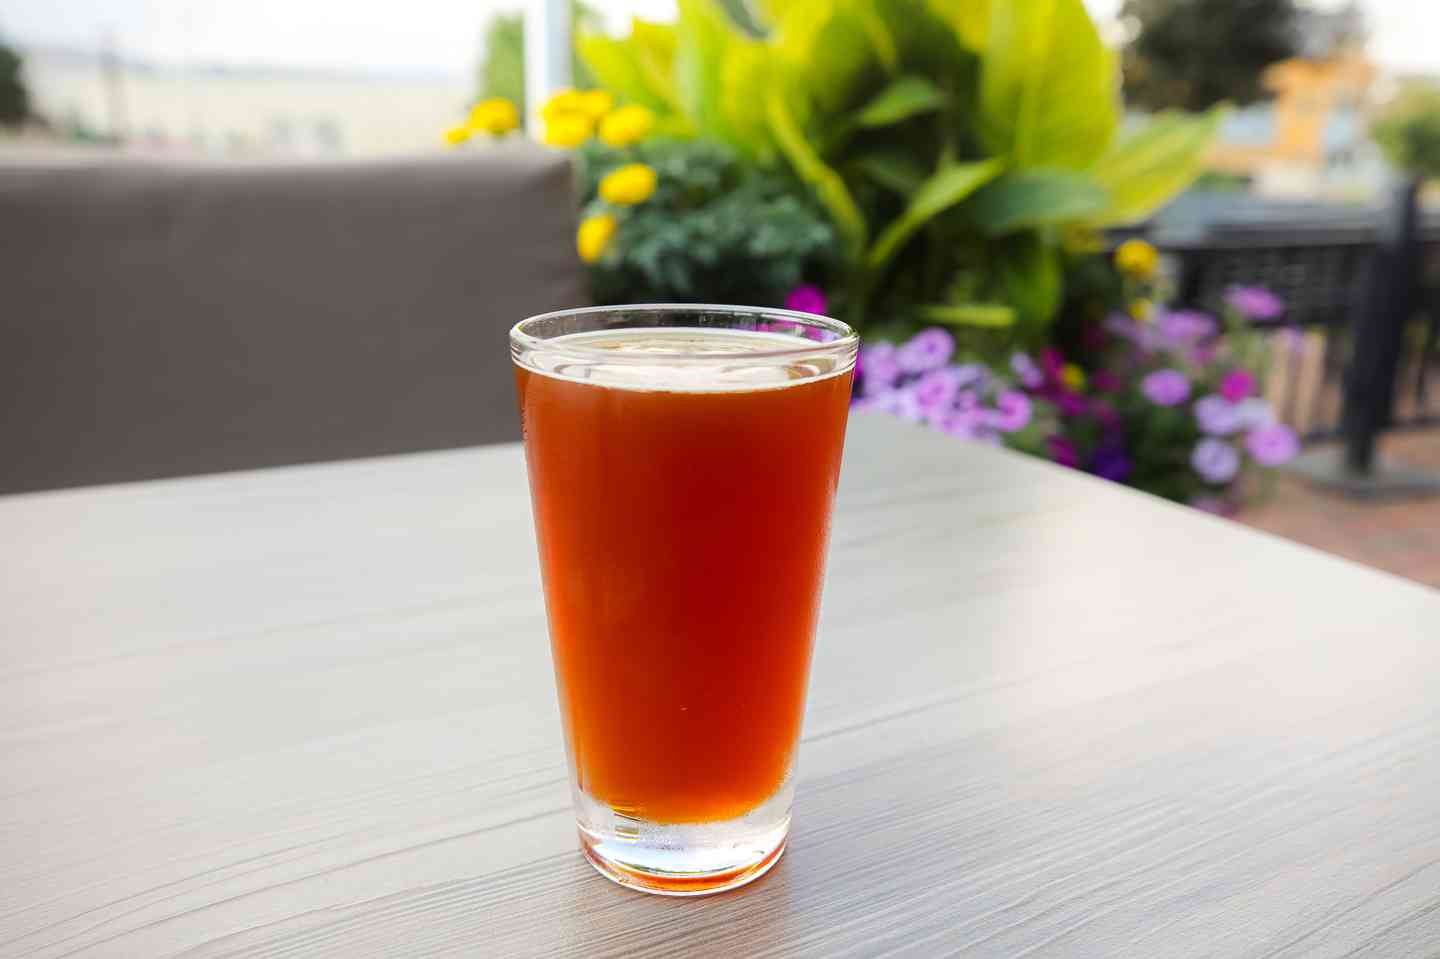 Dry Dock Amber Ale